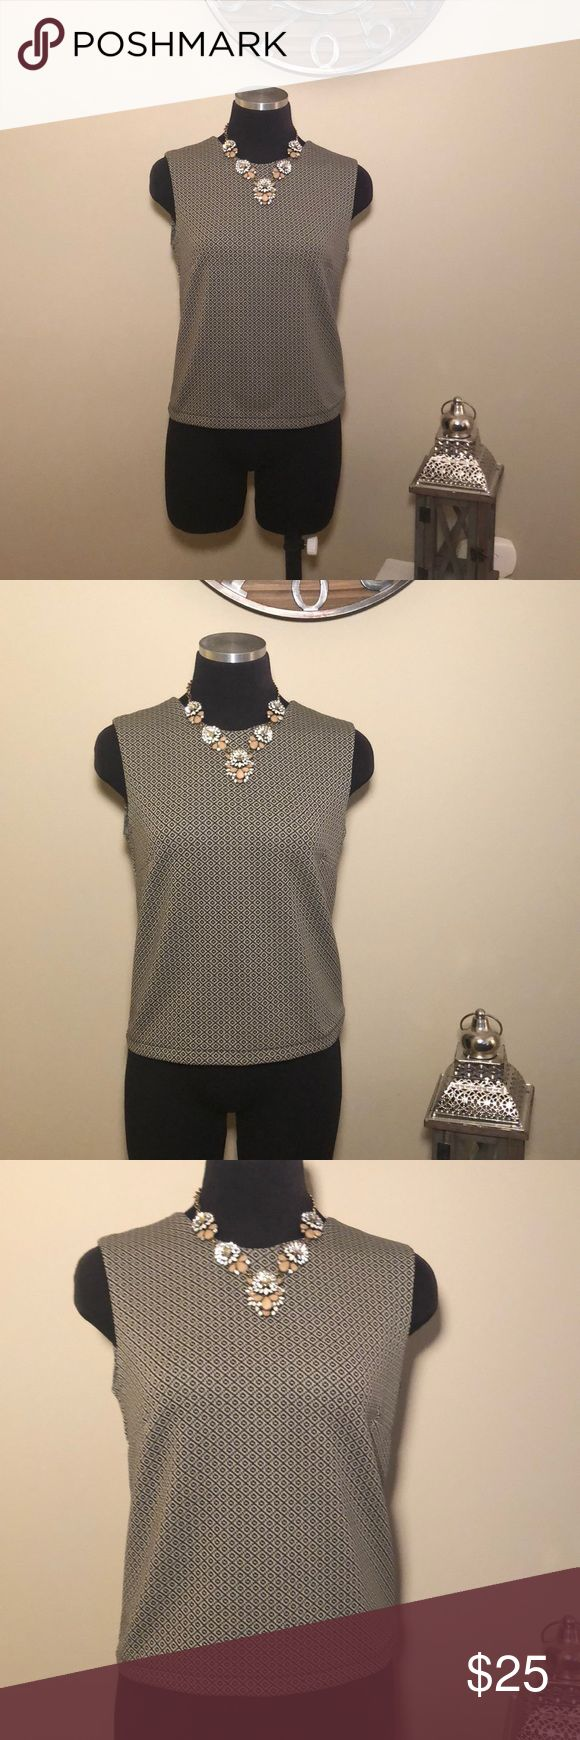 GAP tan & black sleeveless top EUC!! GAP tan & black sleeveless top. Short & form fitting. Super chic & fashionable! Would look great with heels & black pants. Zipper closure in the back. Some stretch to it. Pit to pit measures 17in. Shoulder to bottom measures 20in. EUC!! Only worn once! GAP Tops